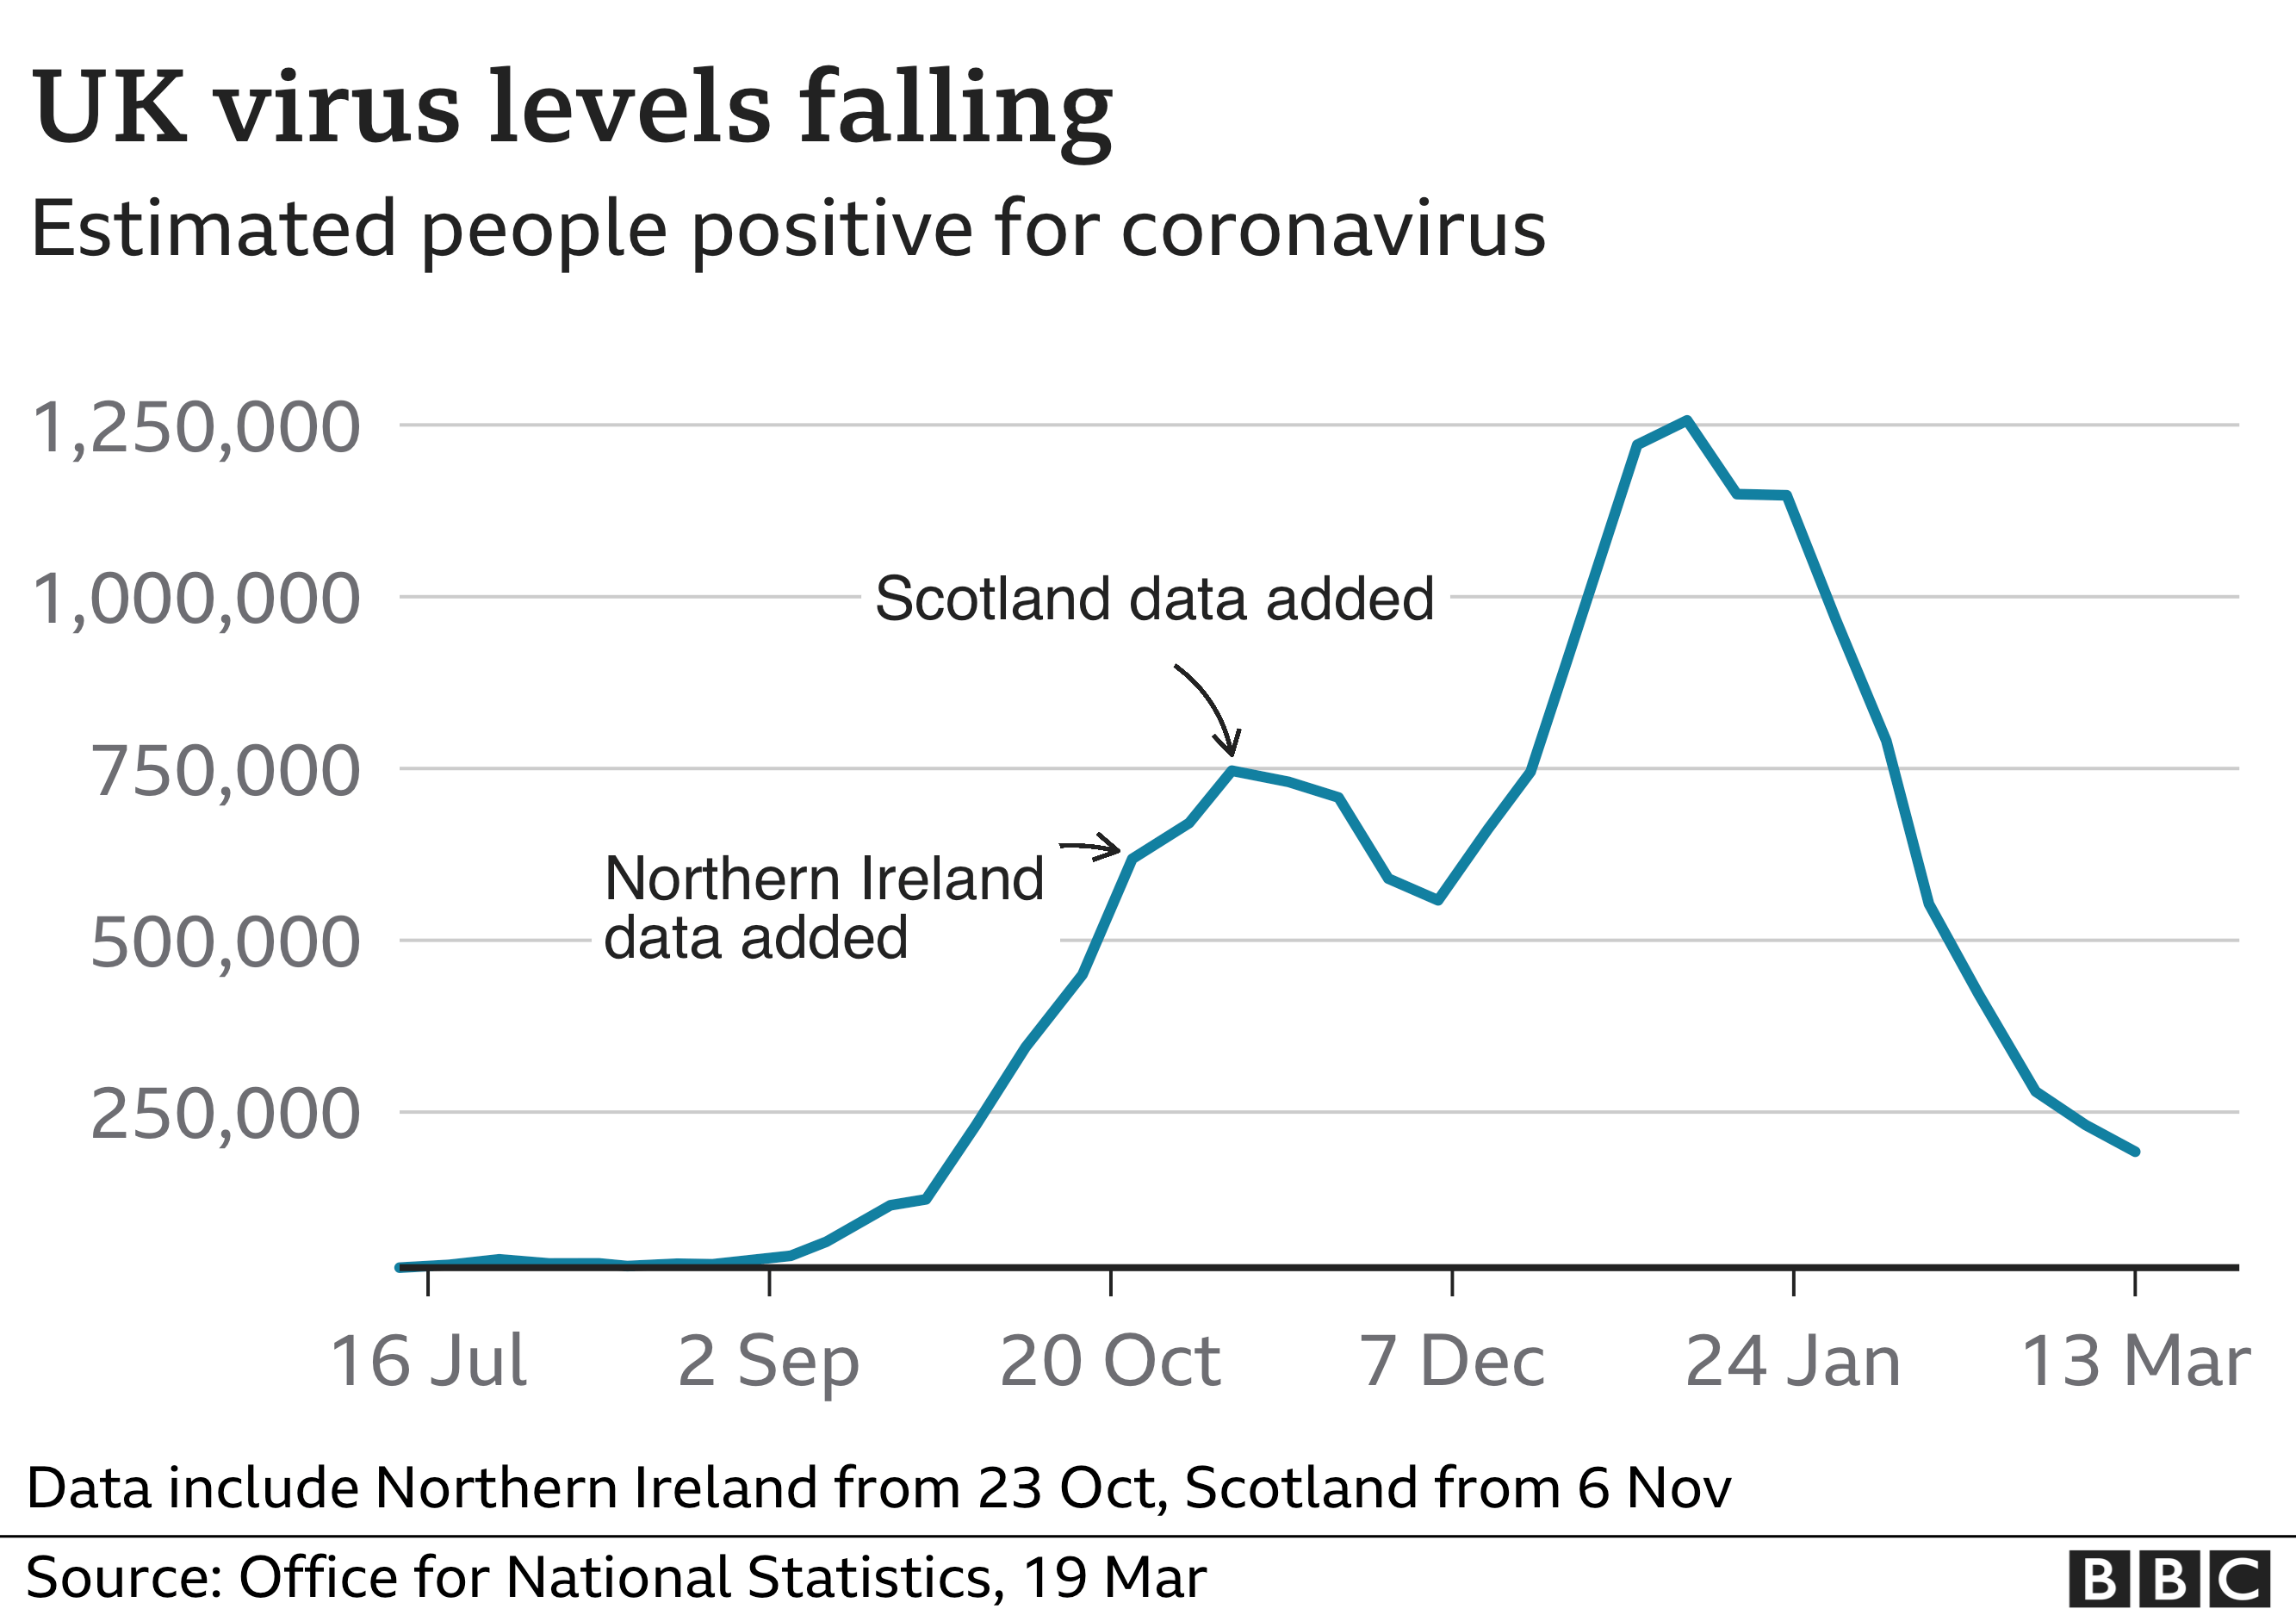 Graph showing UK virus levels falling according to the Office for National Statistics